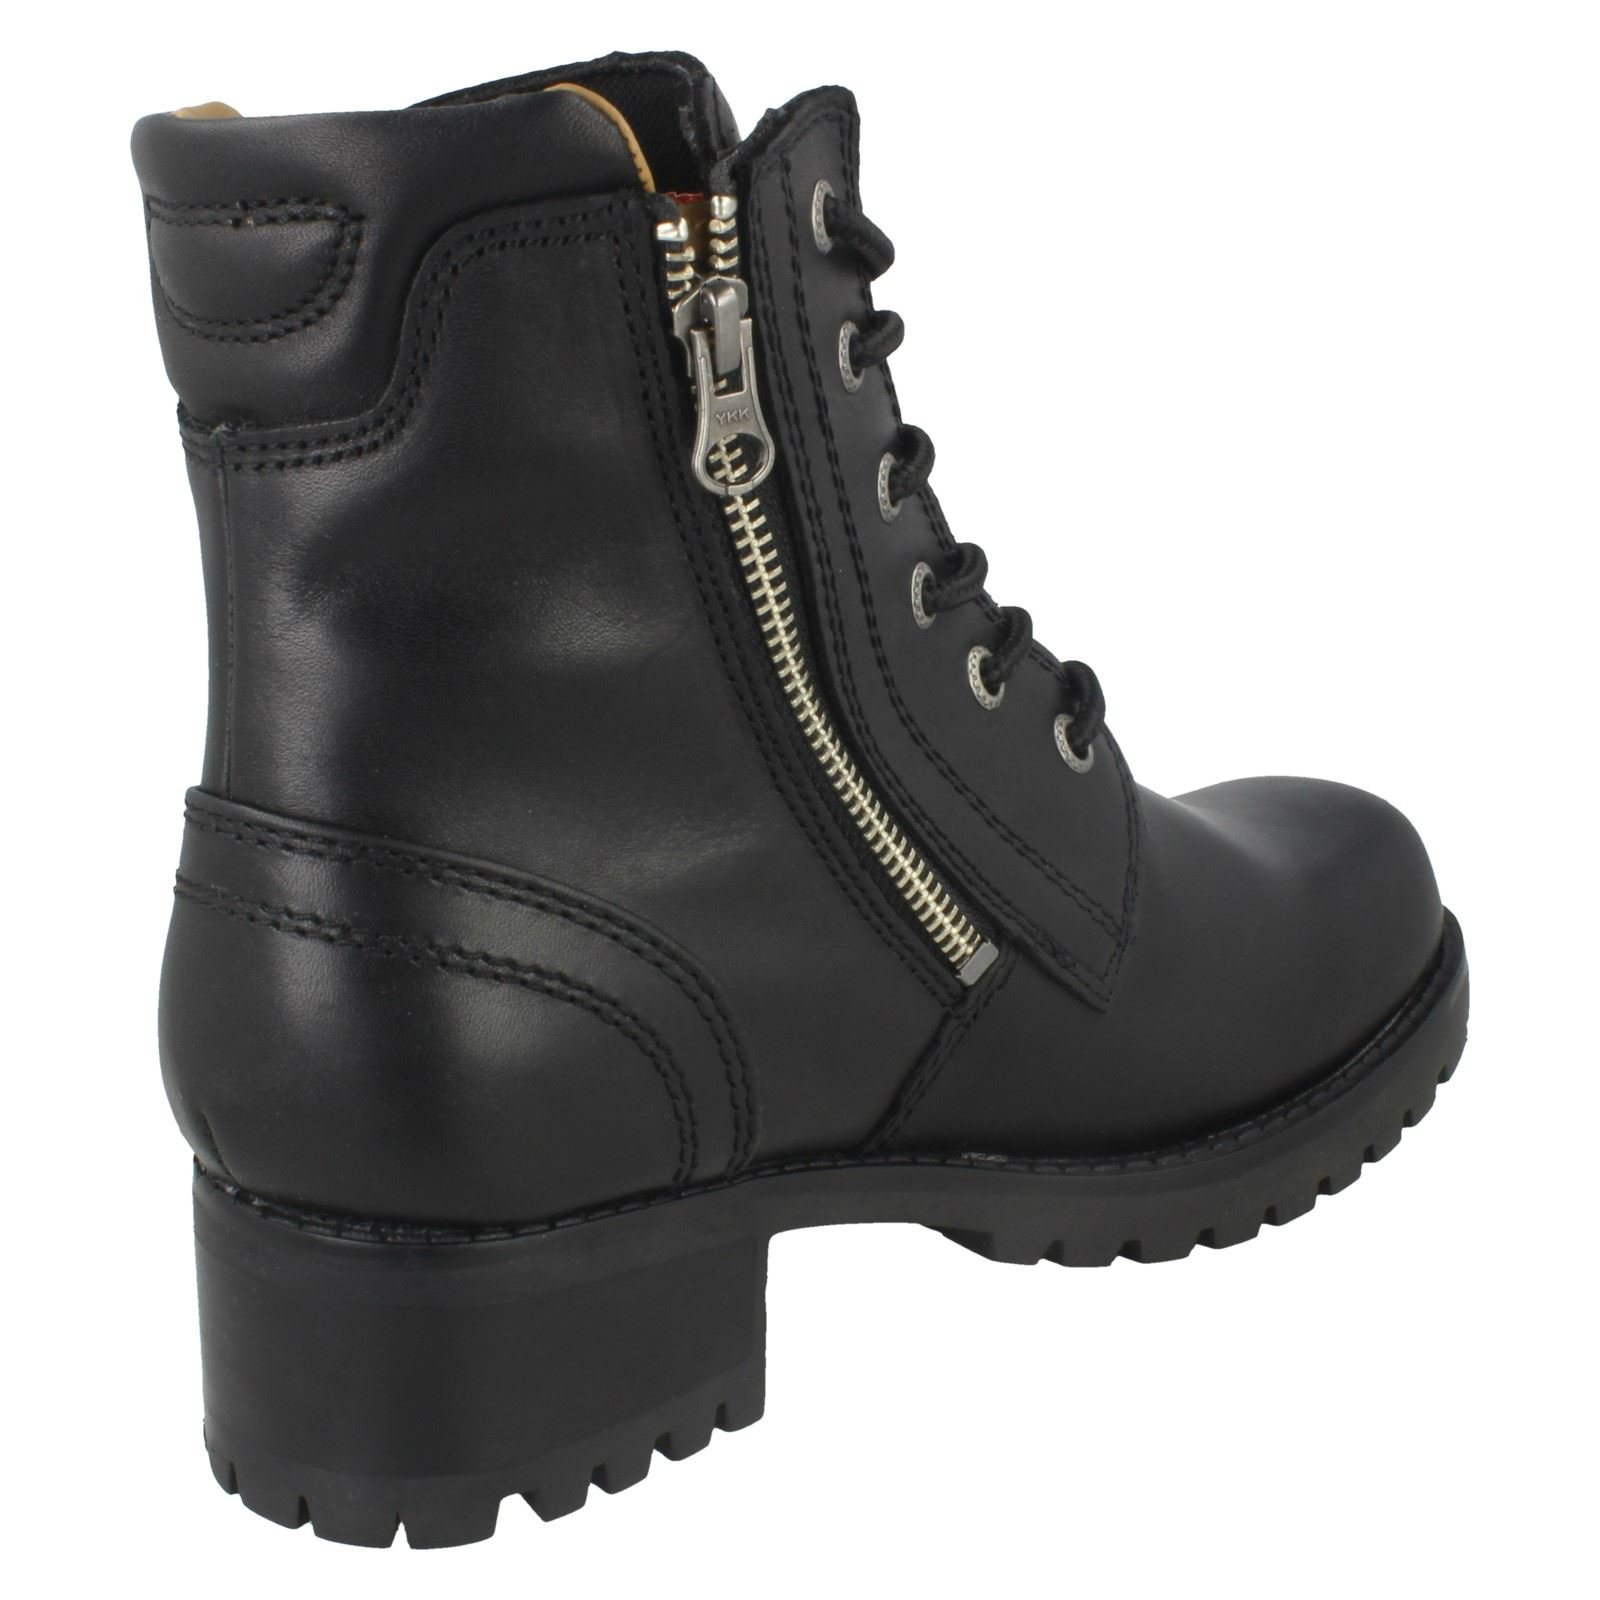 Ladies Harley Davidson Zip Up Ankle Boot Asher